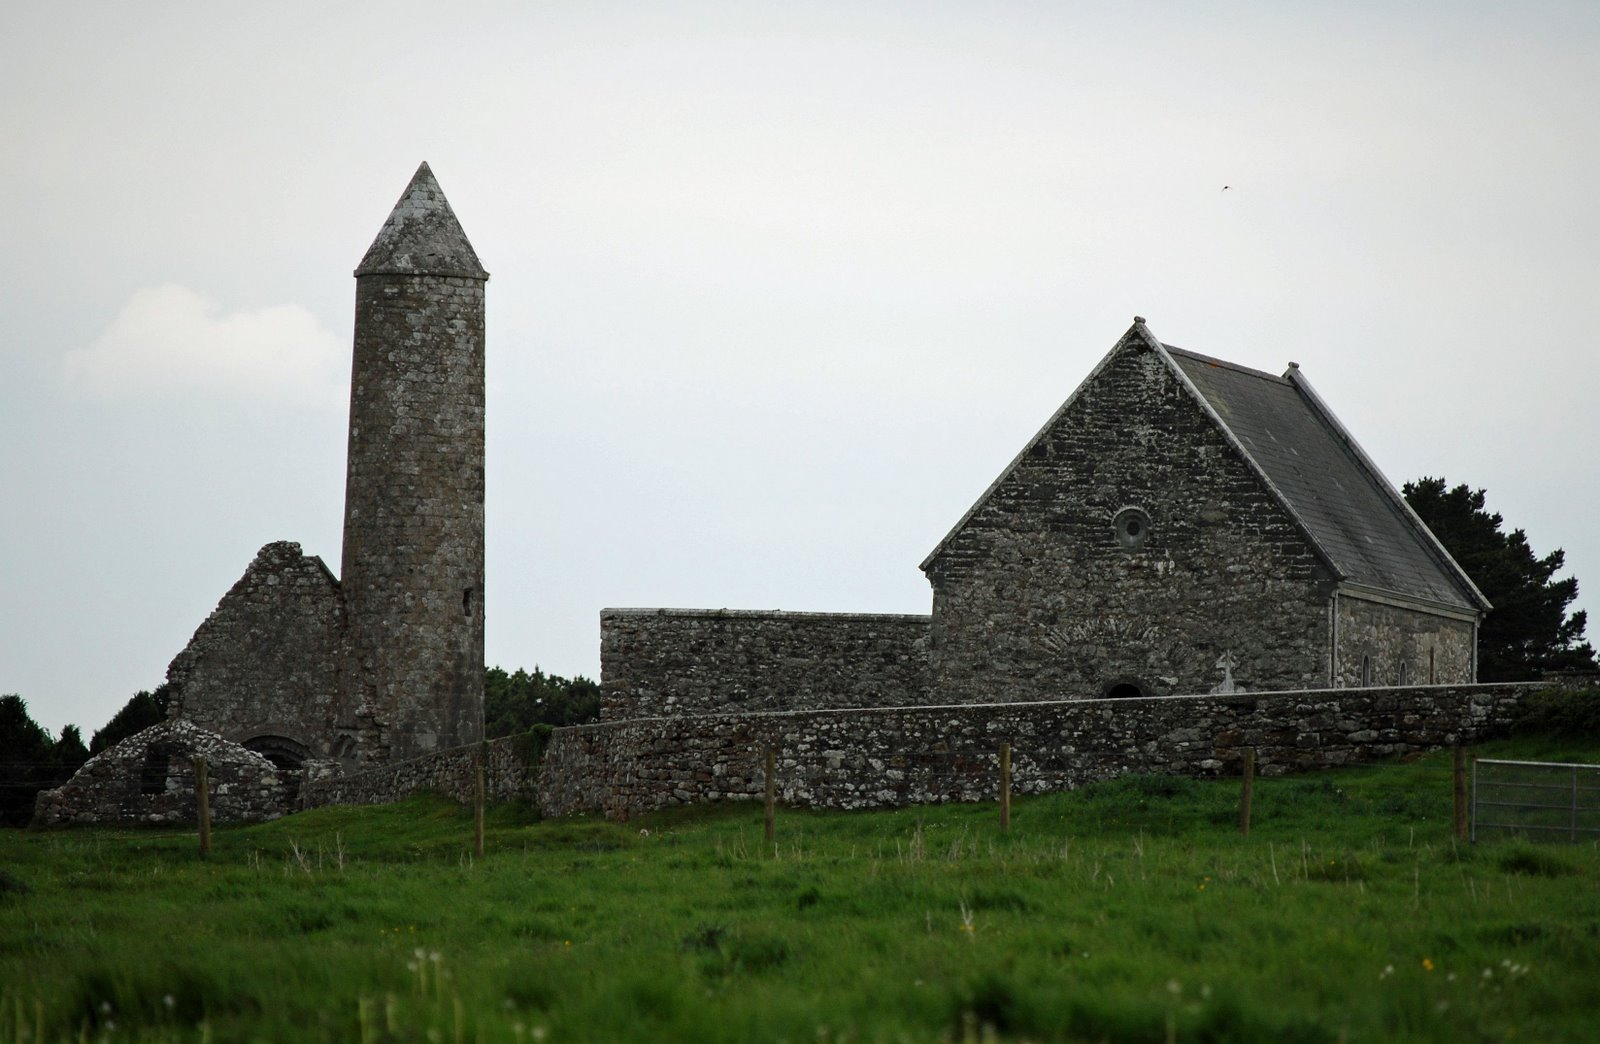 MacCarthy's Tower and Temple Connor at Clonmacnois